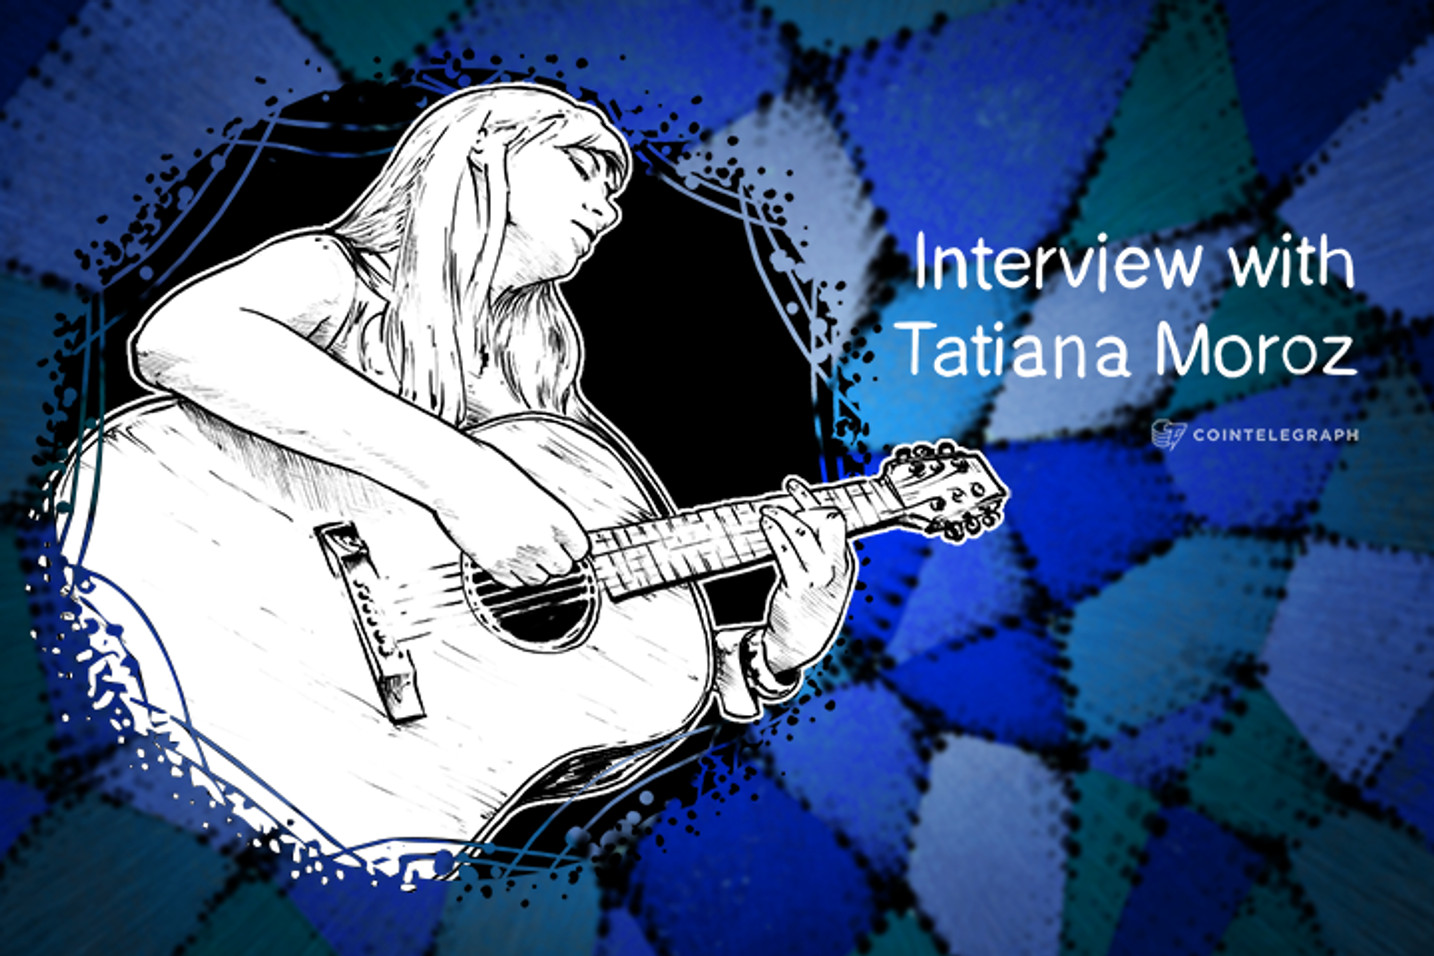 'I Would Like to Meet Ross Ulbricht as a Free Man' – Tatiana Moroz